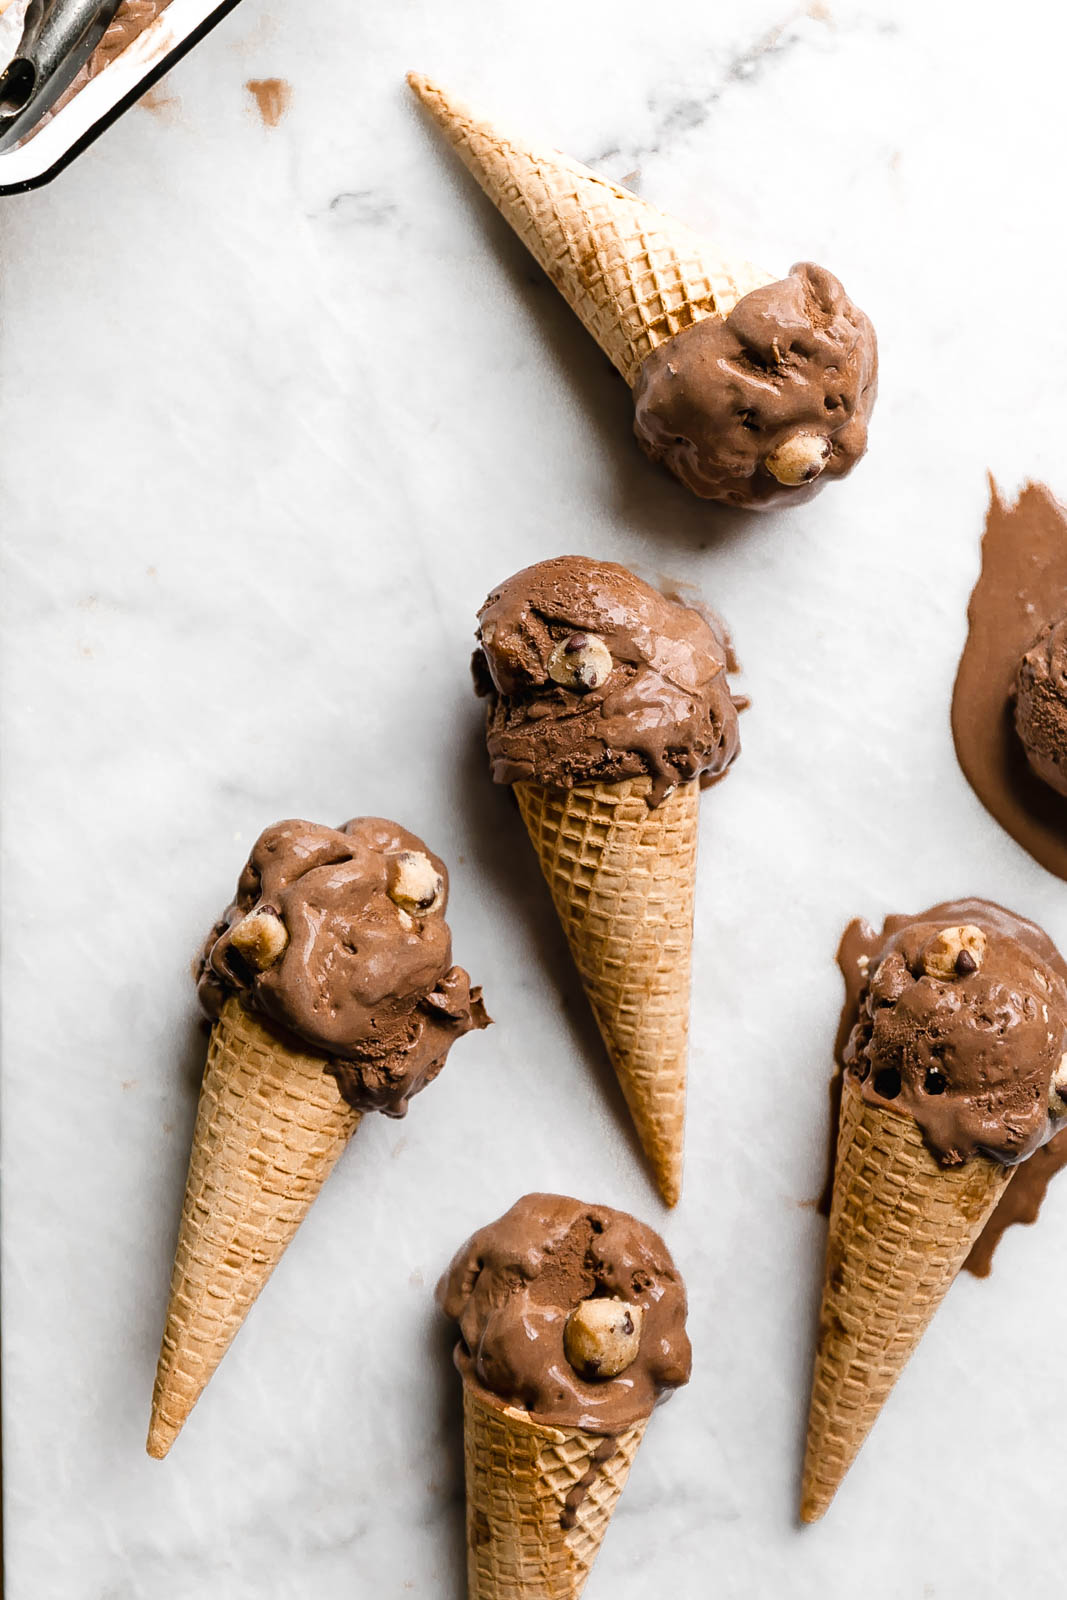 A creamy, dreamy Double Dark Chocolate Cookie Dough Ice Cream made with two types of chocolate and homemade cookie dough pieces.